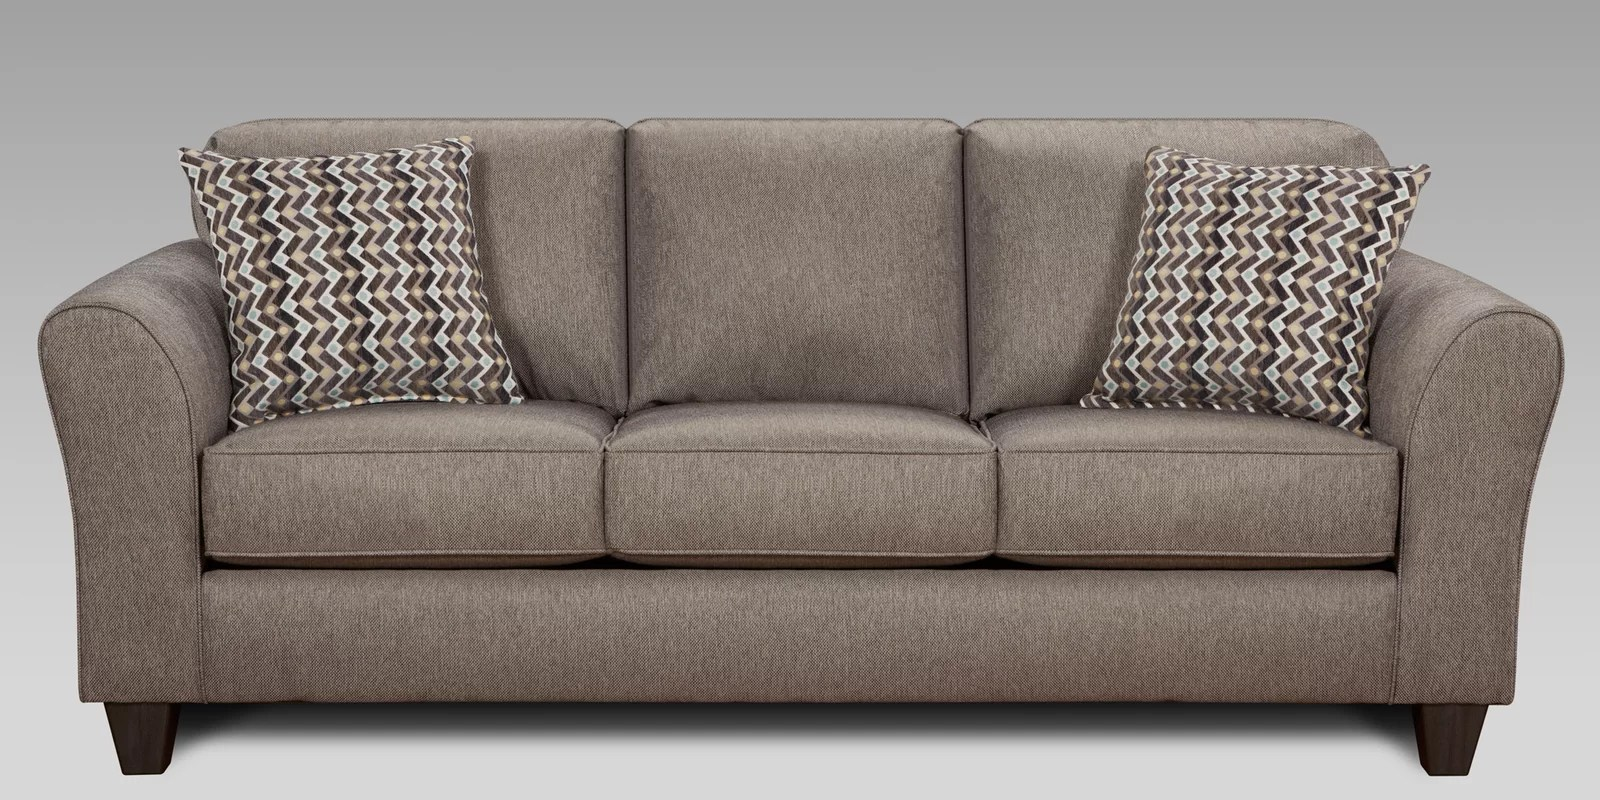 Price Check Austin Sofa By Dcor Design Find A Sofas